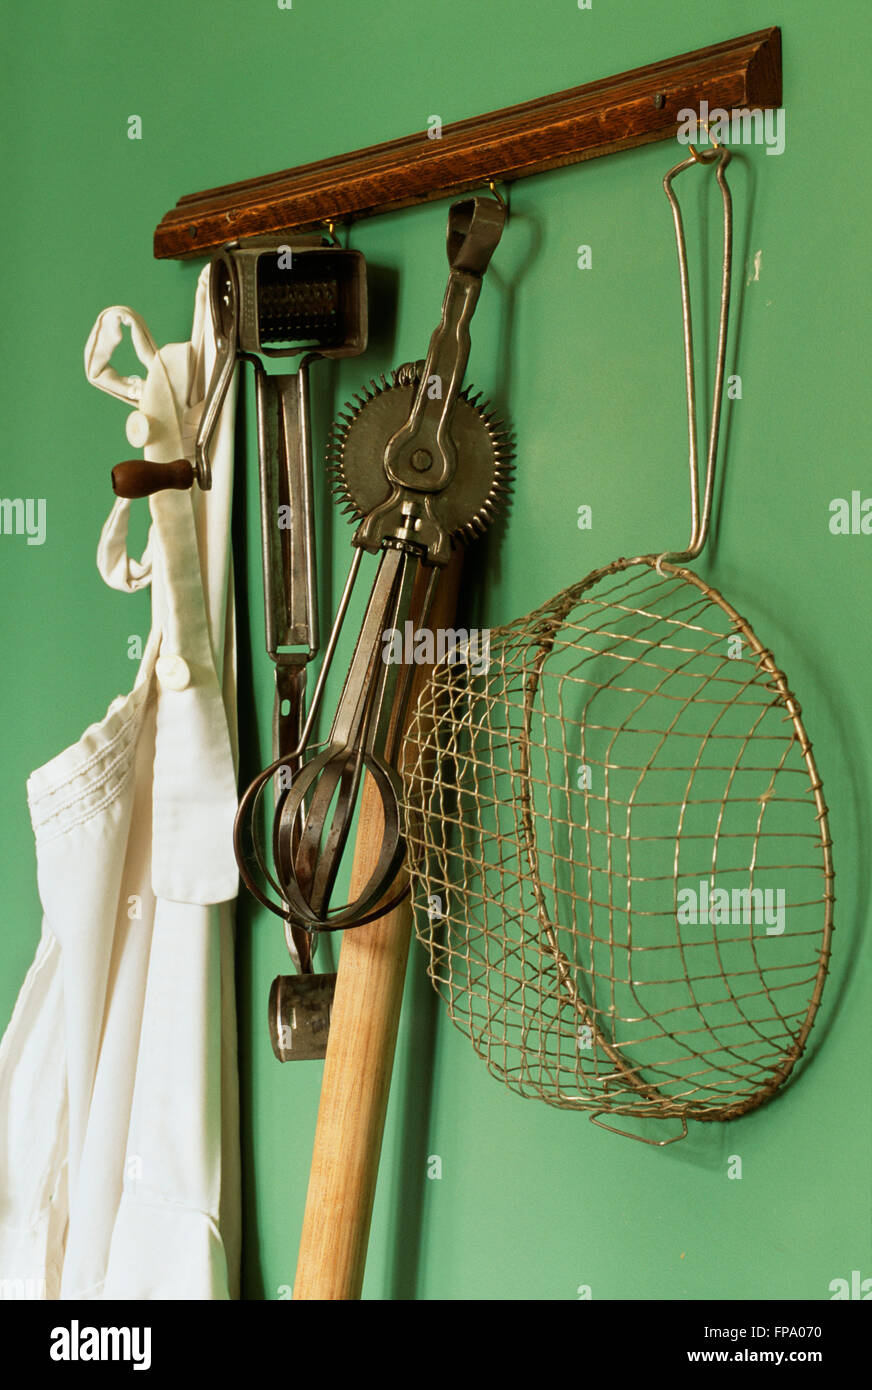 Vintage kitchen gadgets - Stock Photo Vintage Kitchen Gadgets Hanging From A Rack